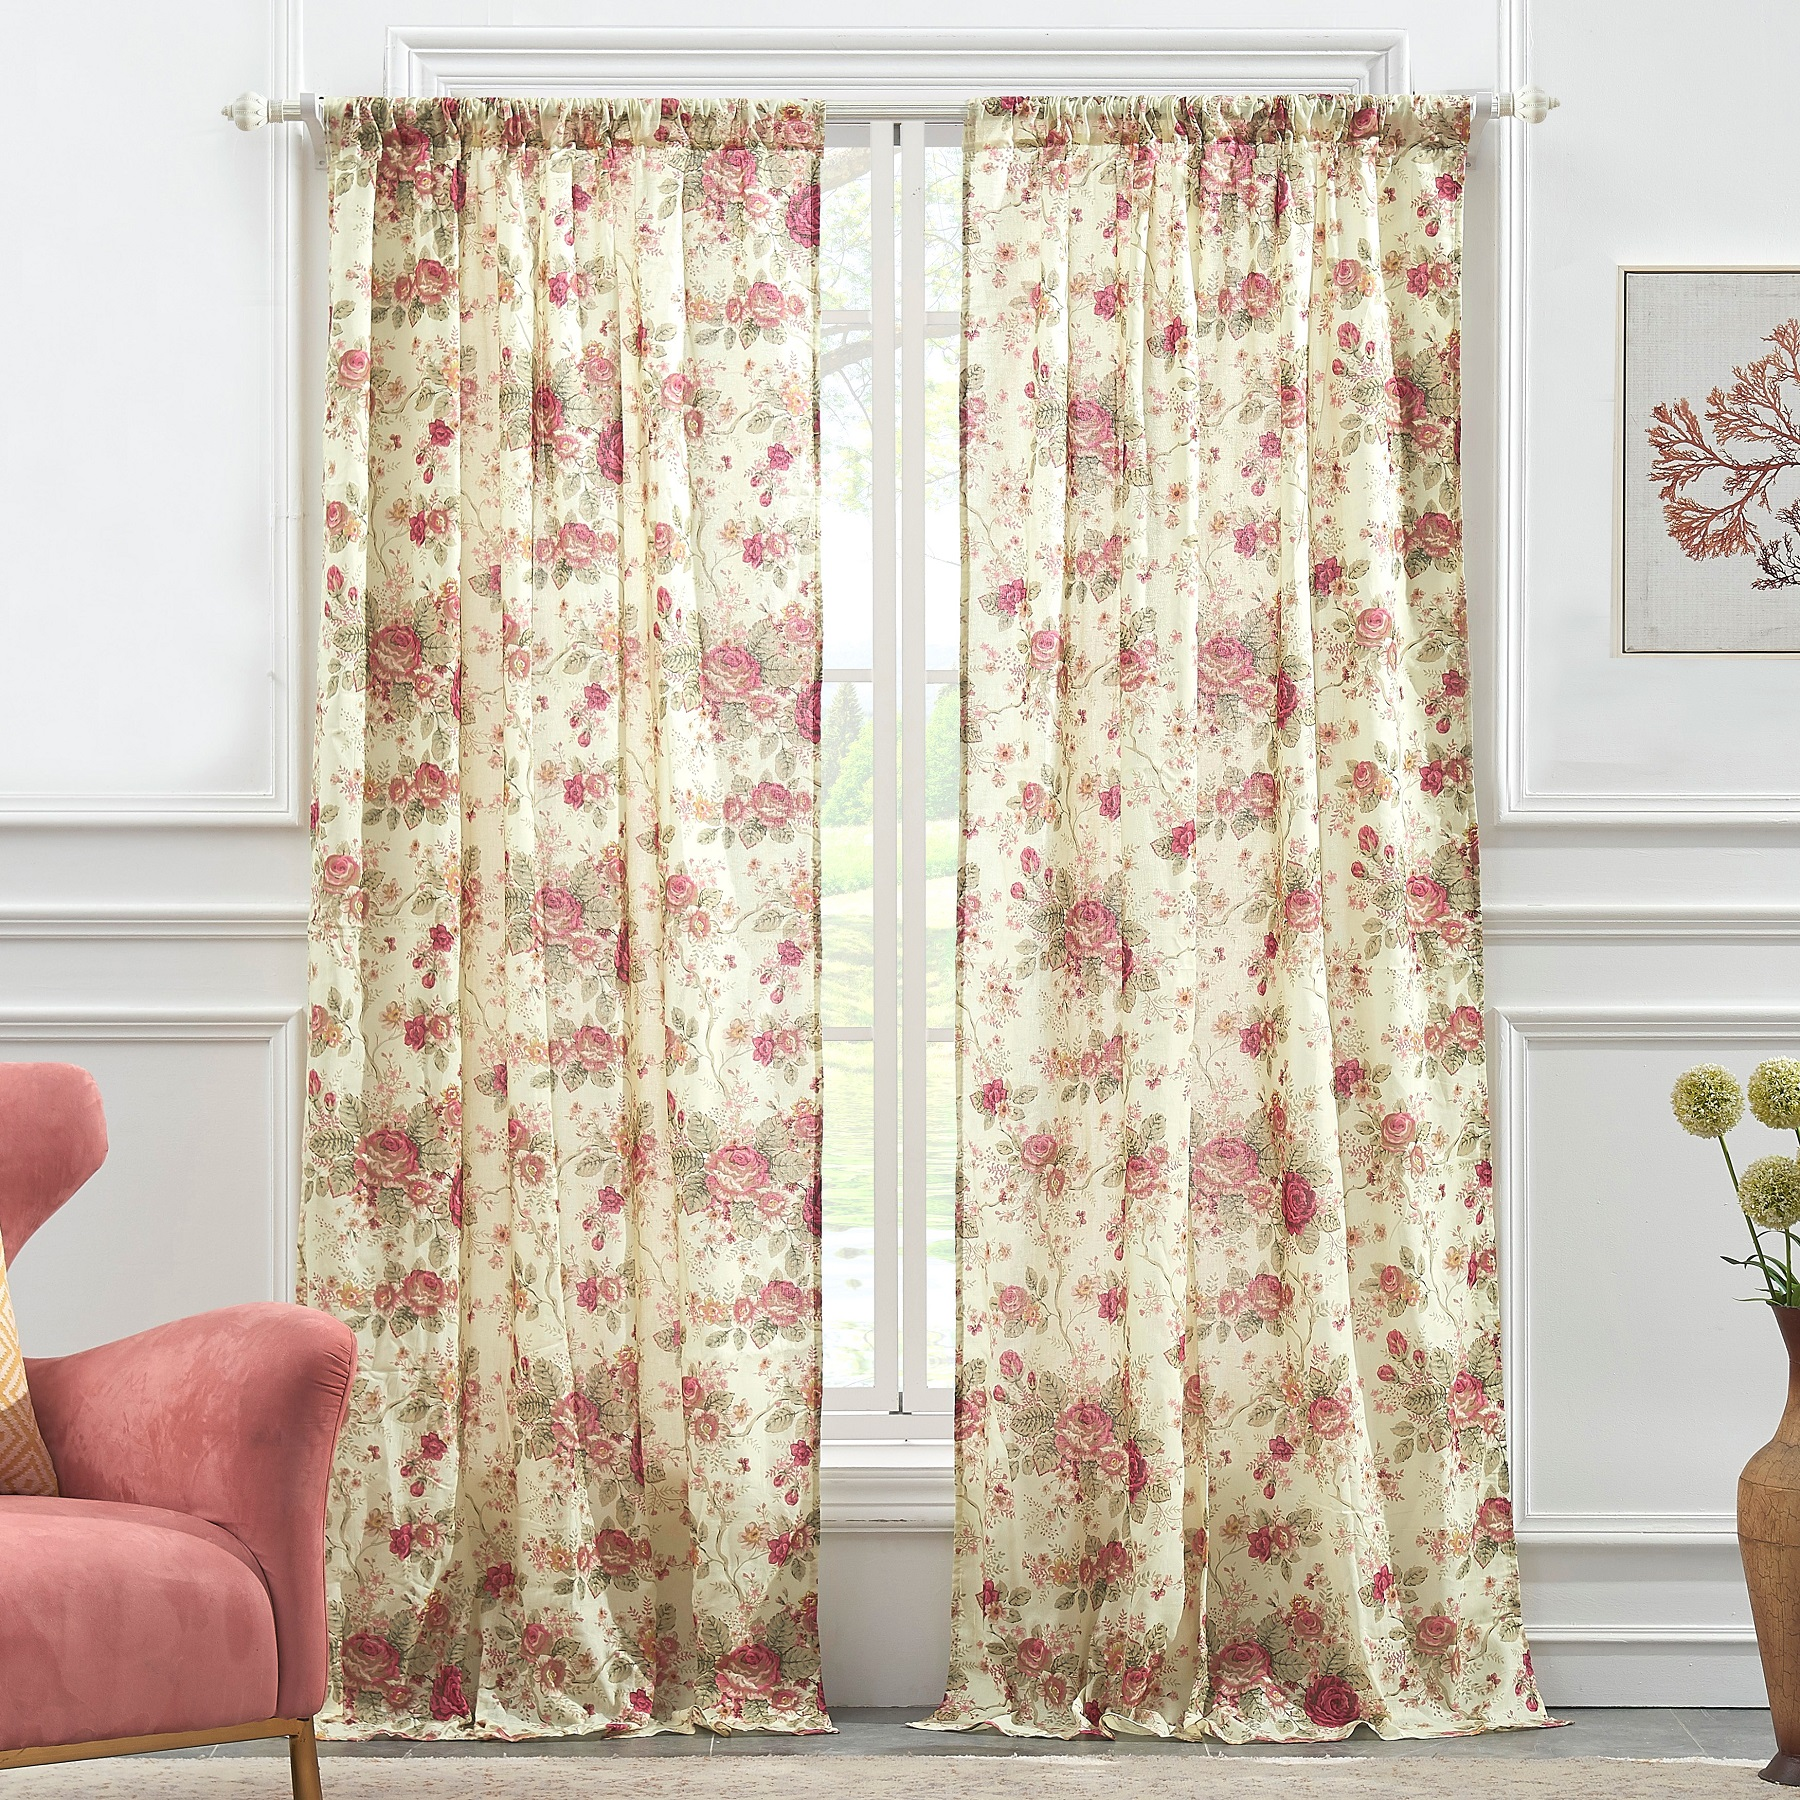 Global Trends Antique Rose Curtain Panel, Set of 2